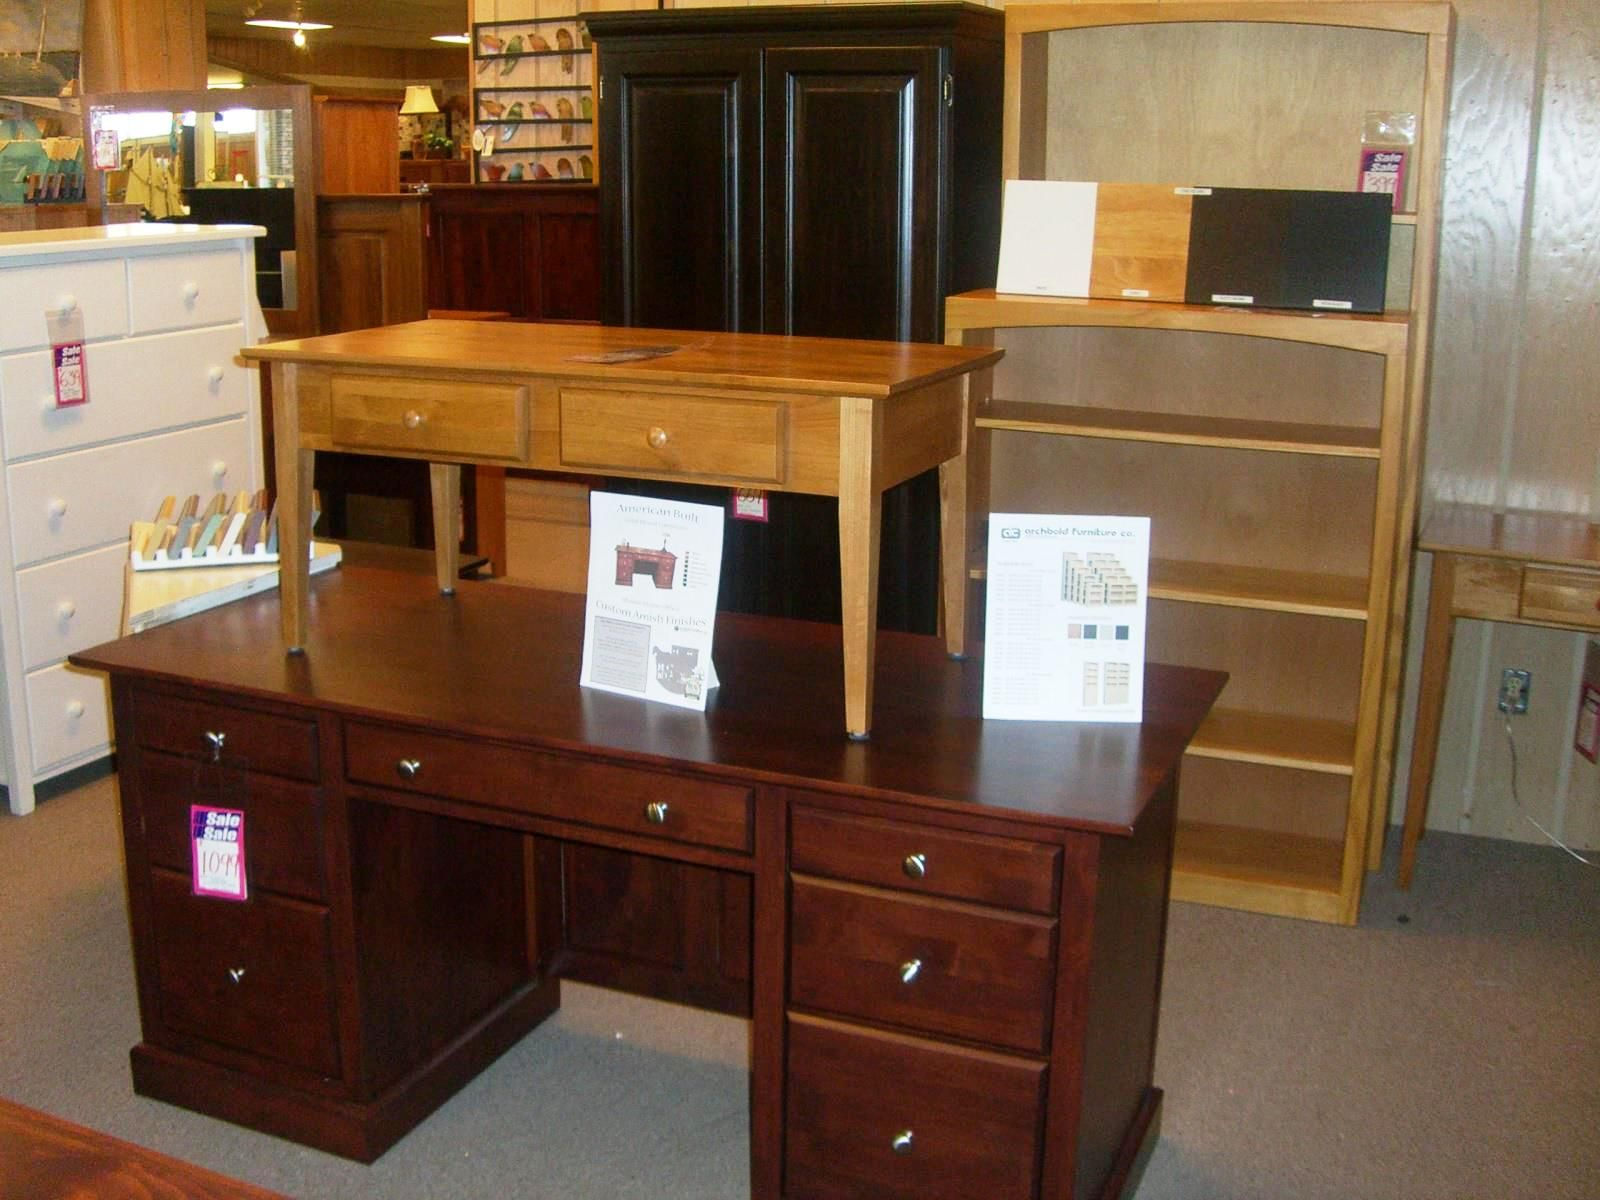 Nice Archbold Fine Furniture Company. All Real Wood American Made Furniture  Finished By The Amish!